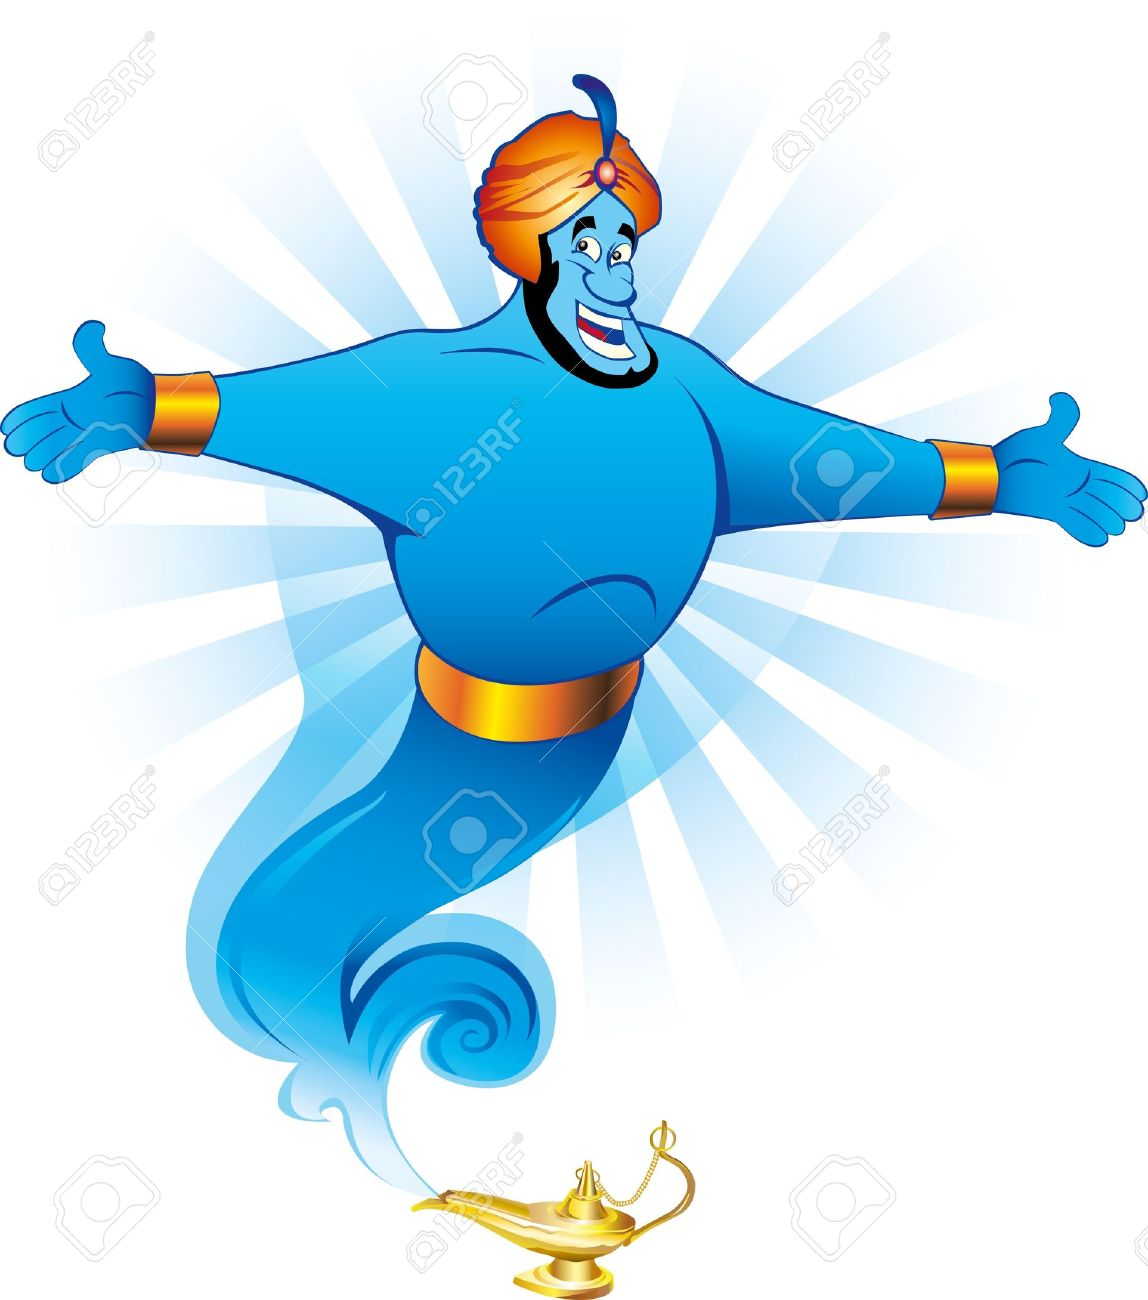 Illustration of Magic Genie Appear from Magic Lamp. - 18990083